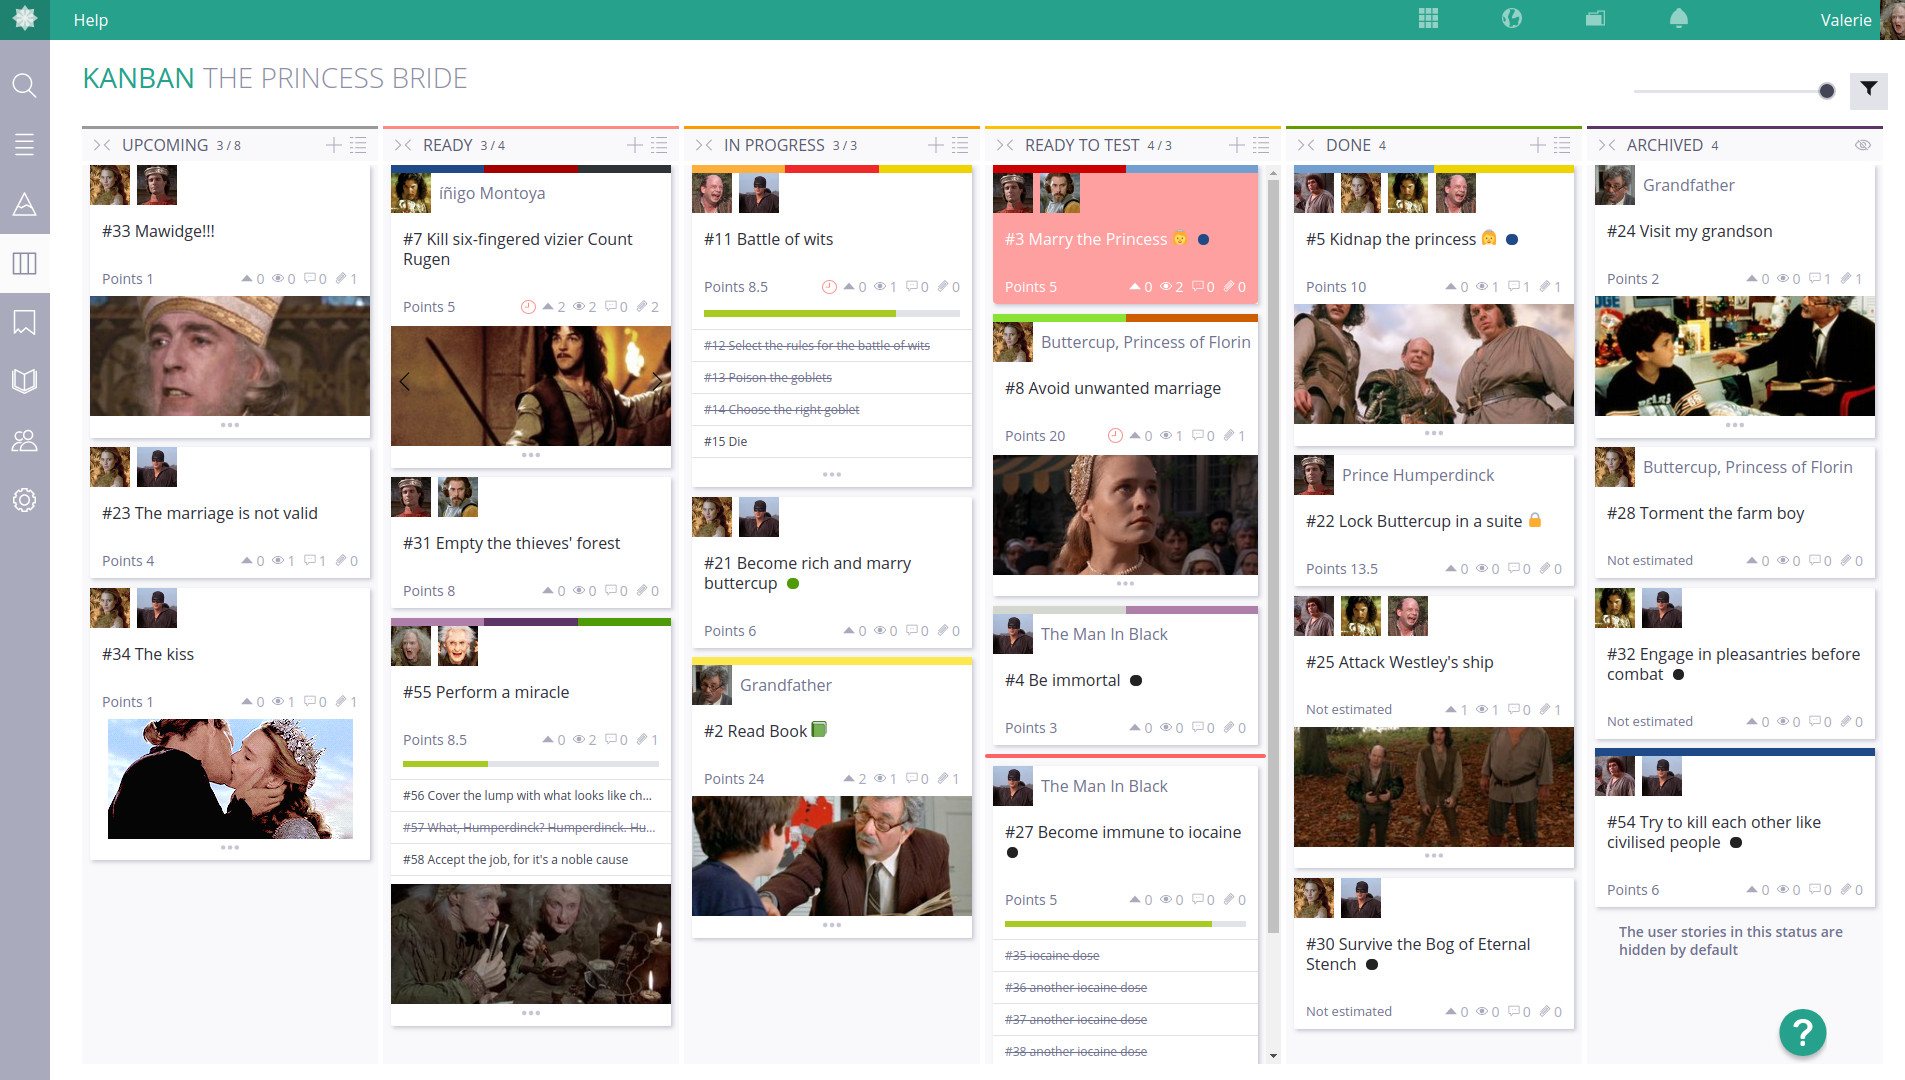 Screenshot of Taiga showing the kanban mode with several columns (upcoming, ready, in progress, ready to test, done, archived) with cards for each item with pictures from the Princess Bride.